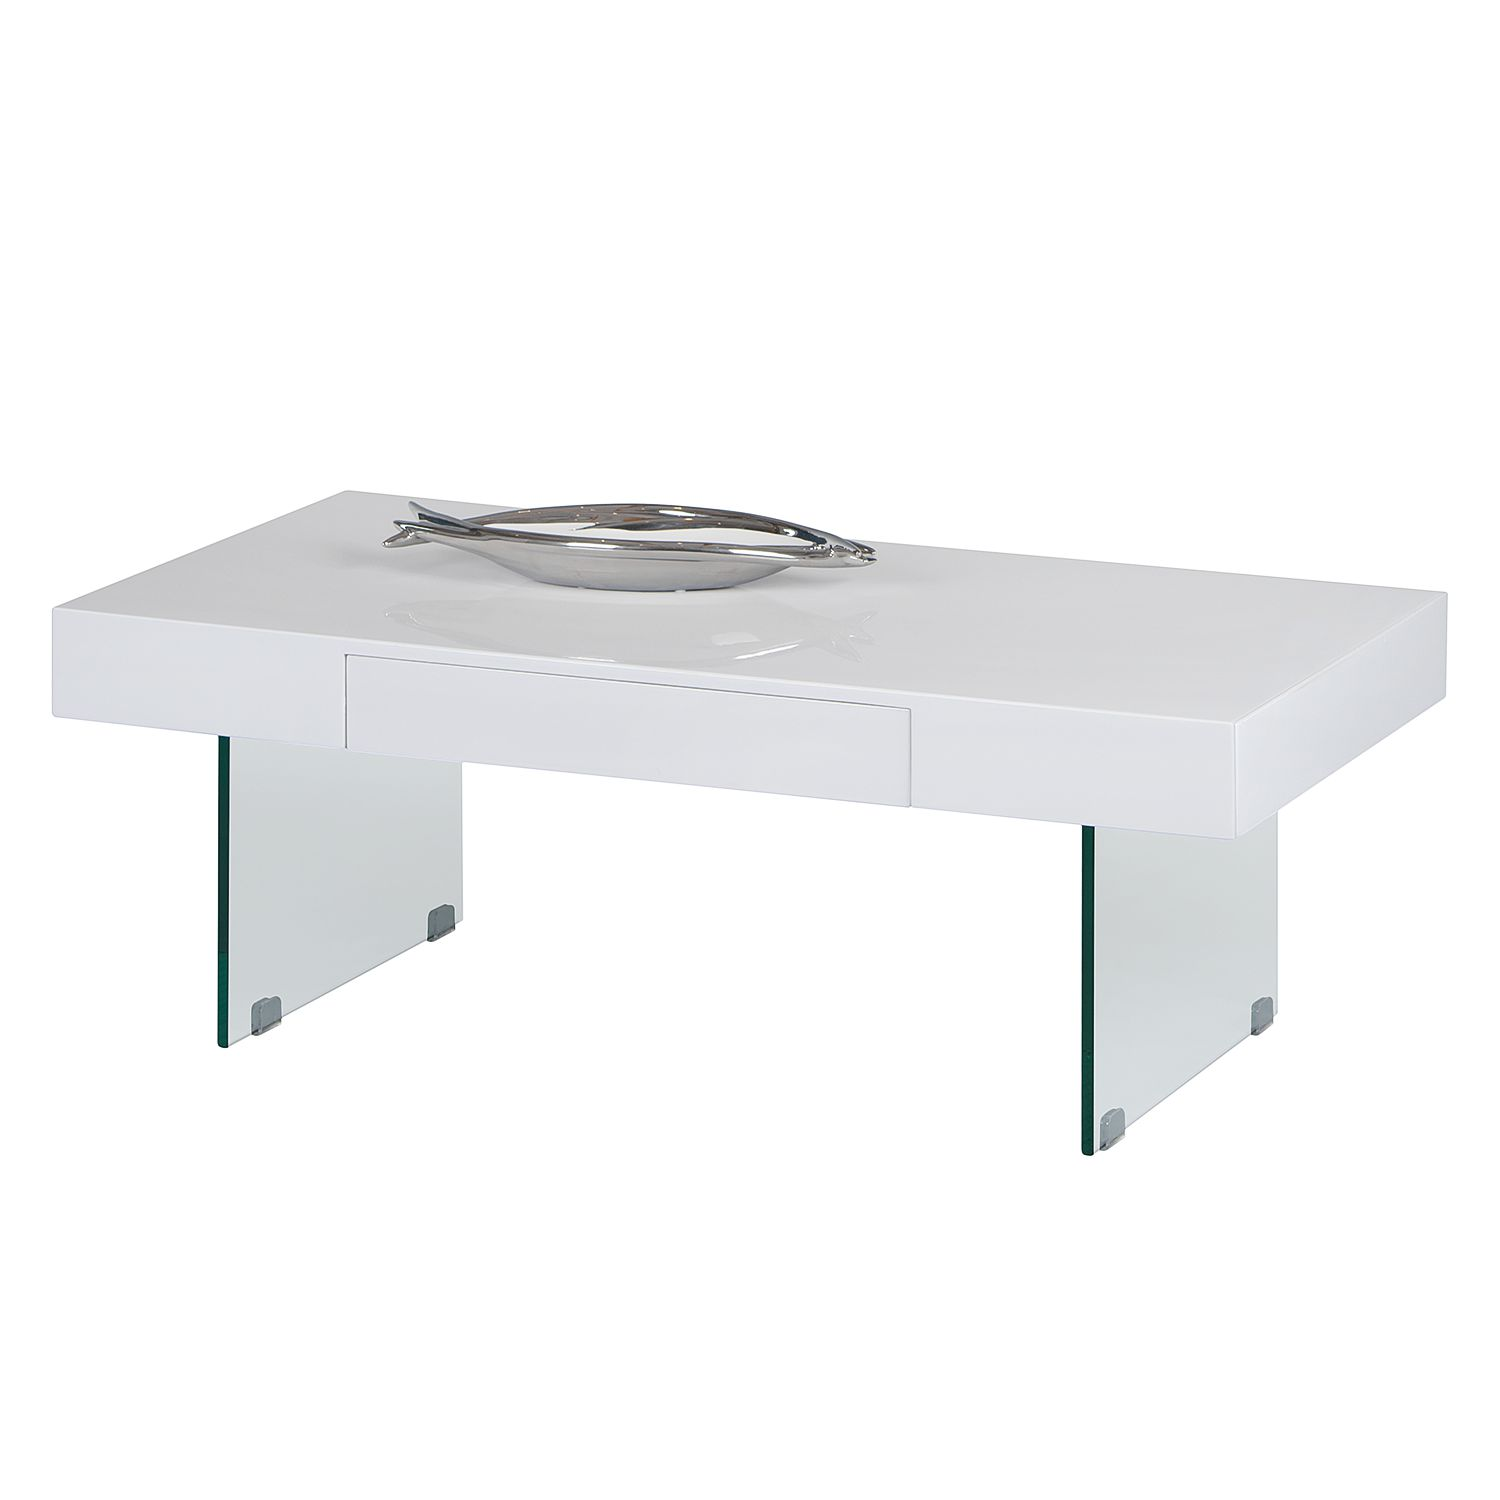 Table basse Dalema - Blanc brillant, mooved